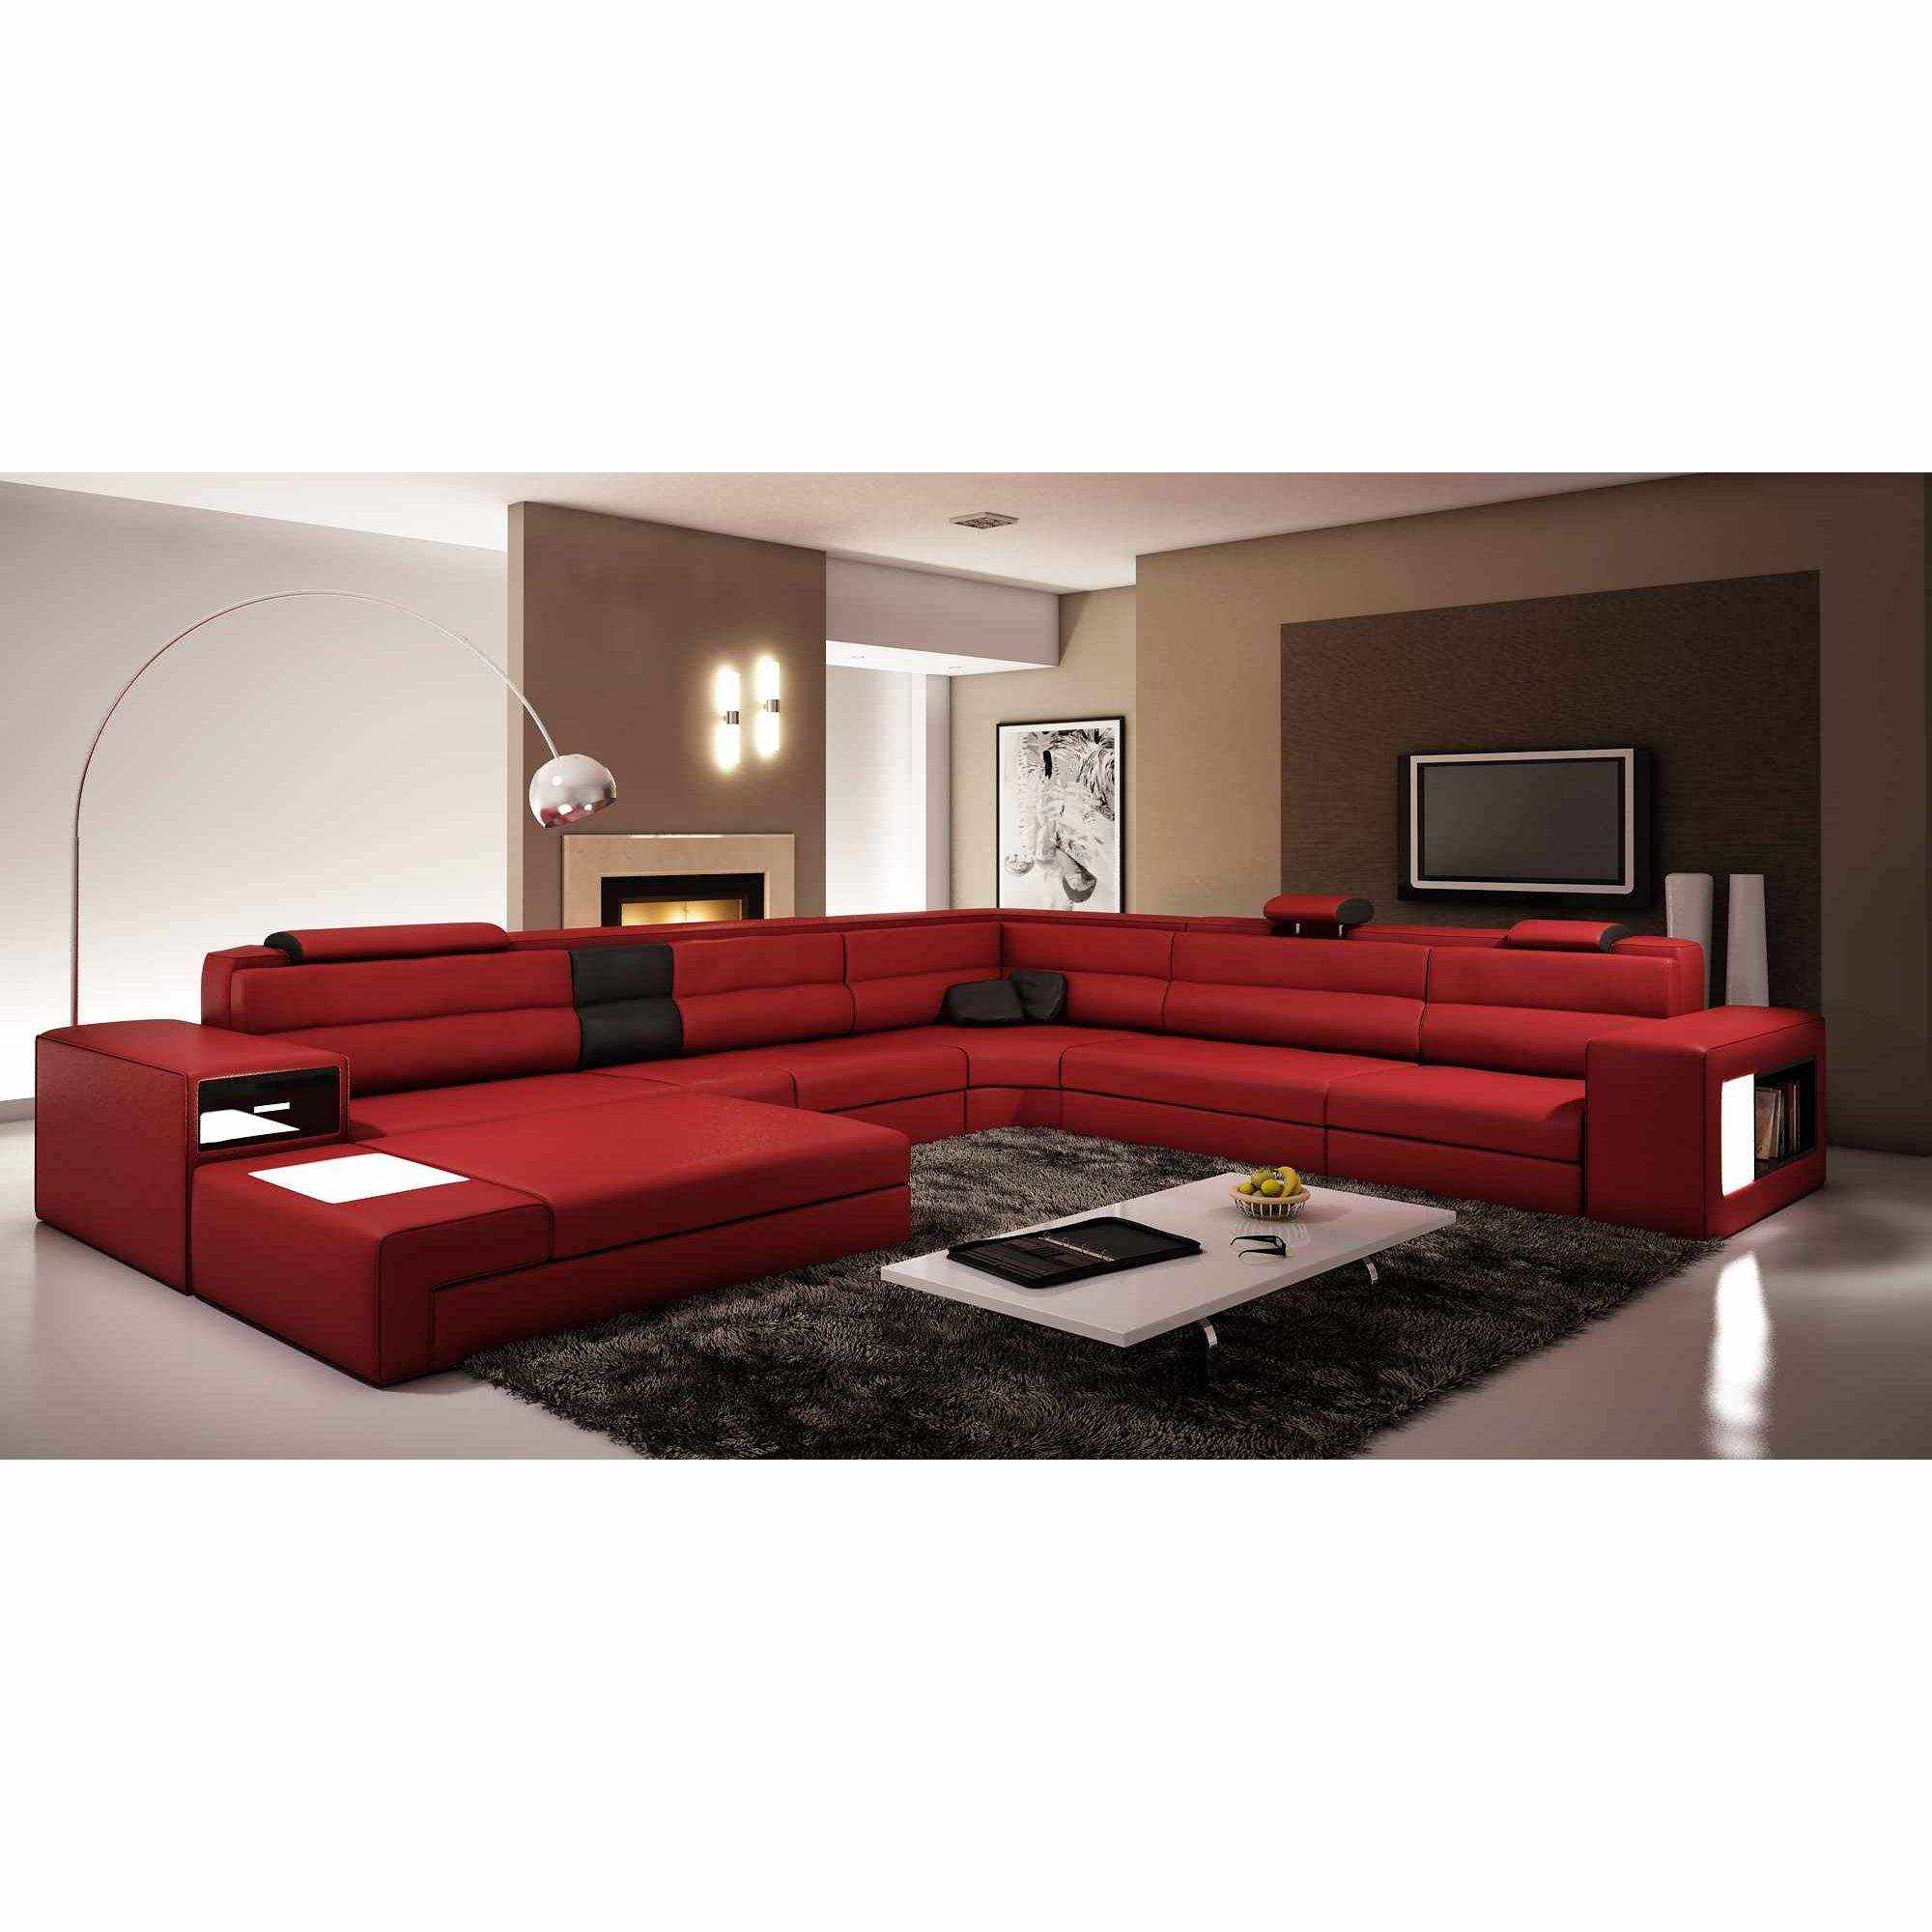 deco in paris 0 canape panoramique cuir angle gauche rouge et noir venise can pano anglegauche. Black Bedroom Furniture Sets. Home Design Ideas